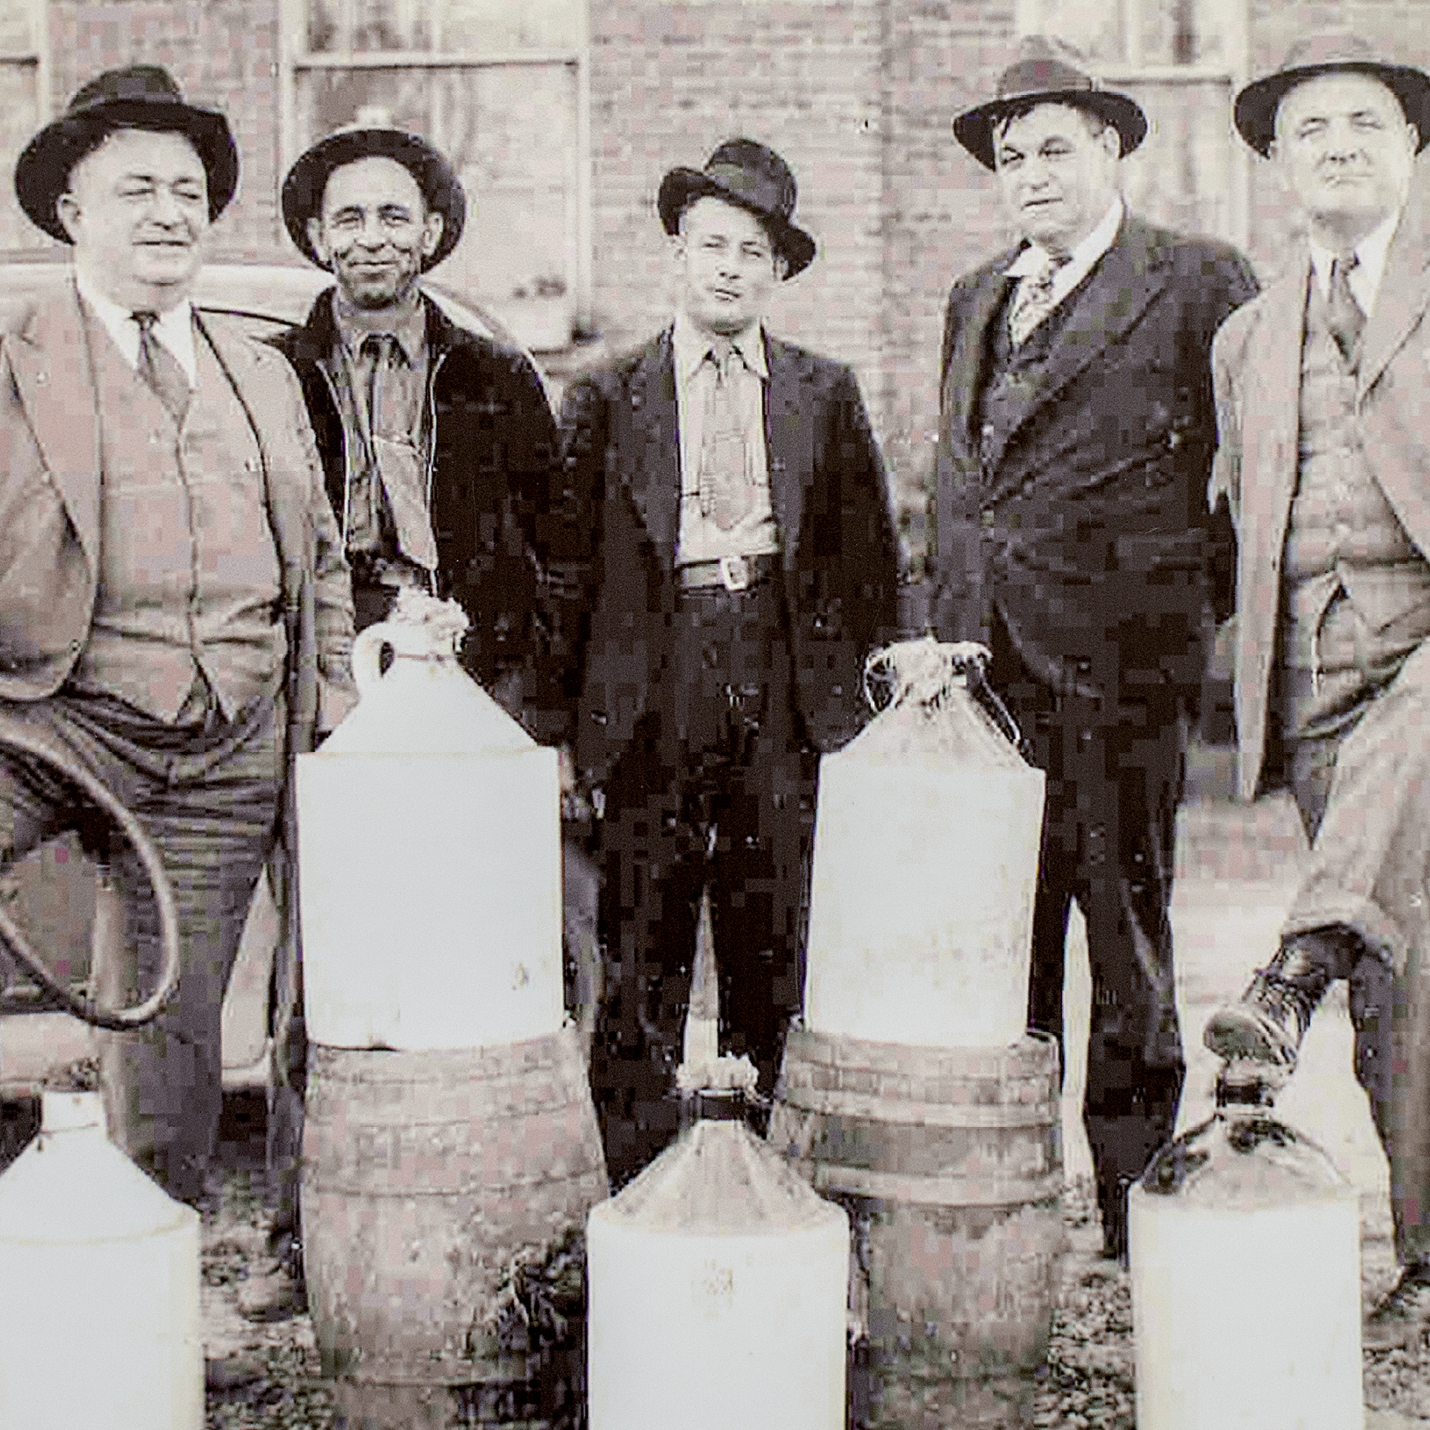 Raids of stills took place throughout the state, with authorities taking possession of the liquor, as shown in this circa-1930s photograph taken in Pickens County.